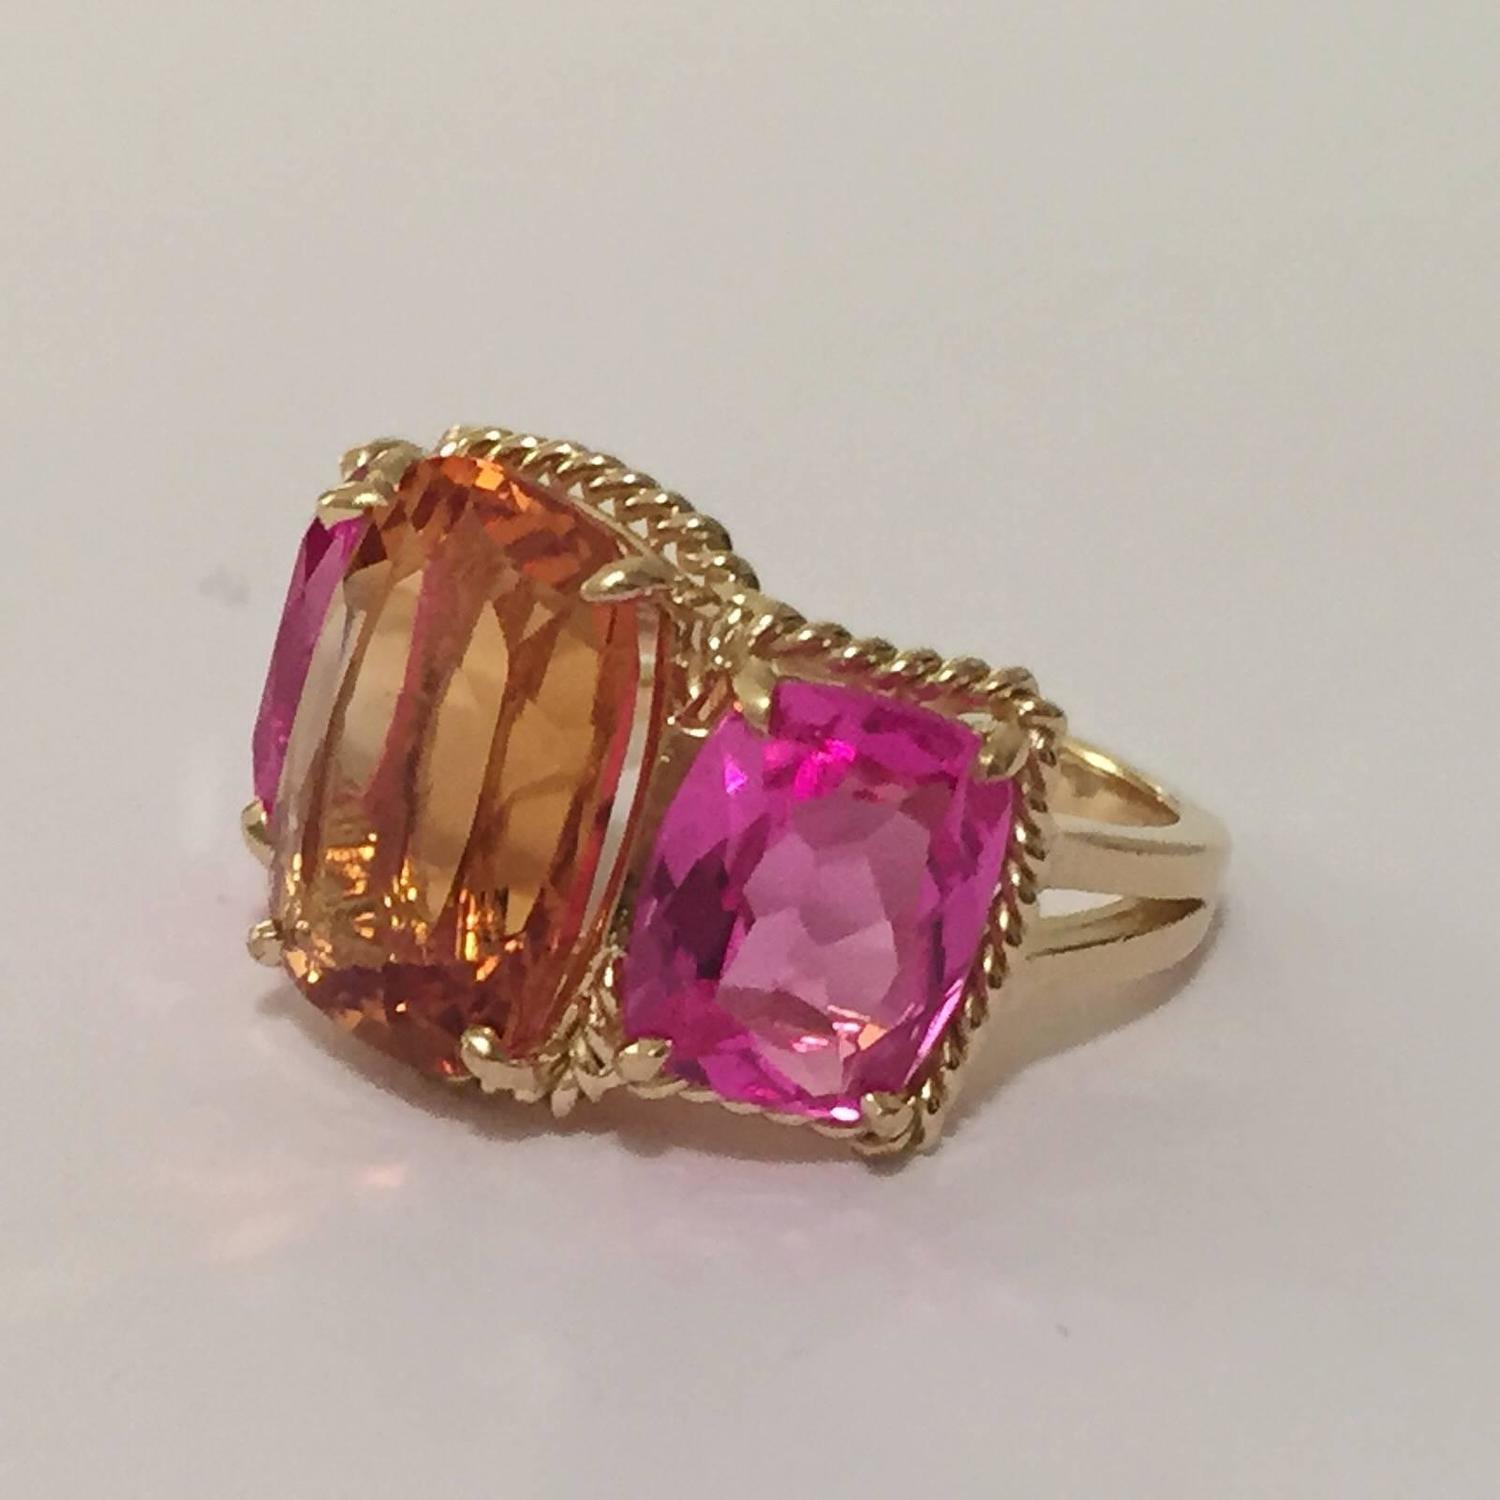 Citrine Pink Topaz Gold Three Stone Ring With Rope Twist Border For Sale At 1stdibs